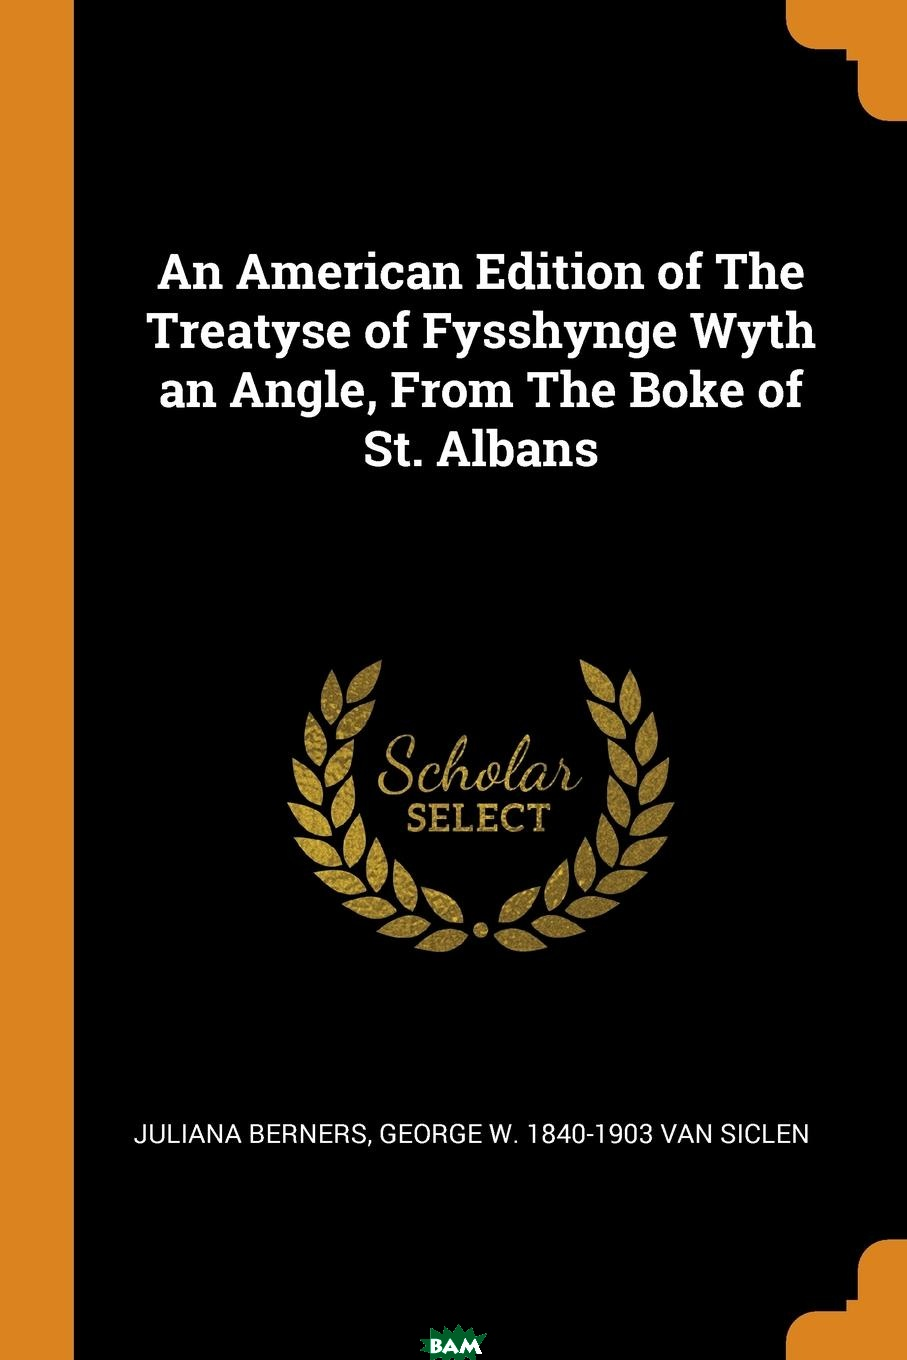 An American Edition of The Treatyse of Fysshynge Wyth an Angle, From The Boke of St. Albans